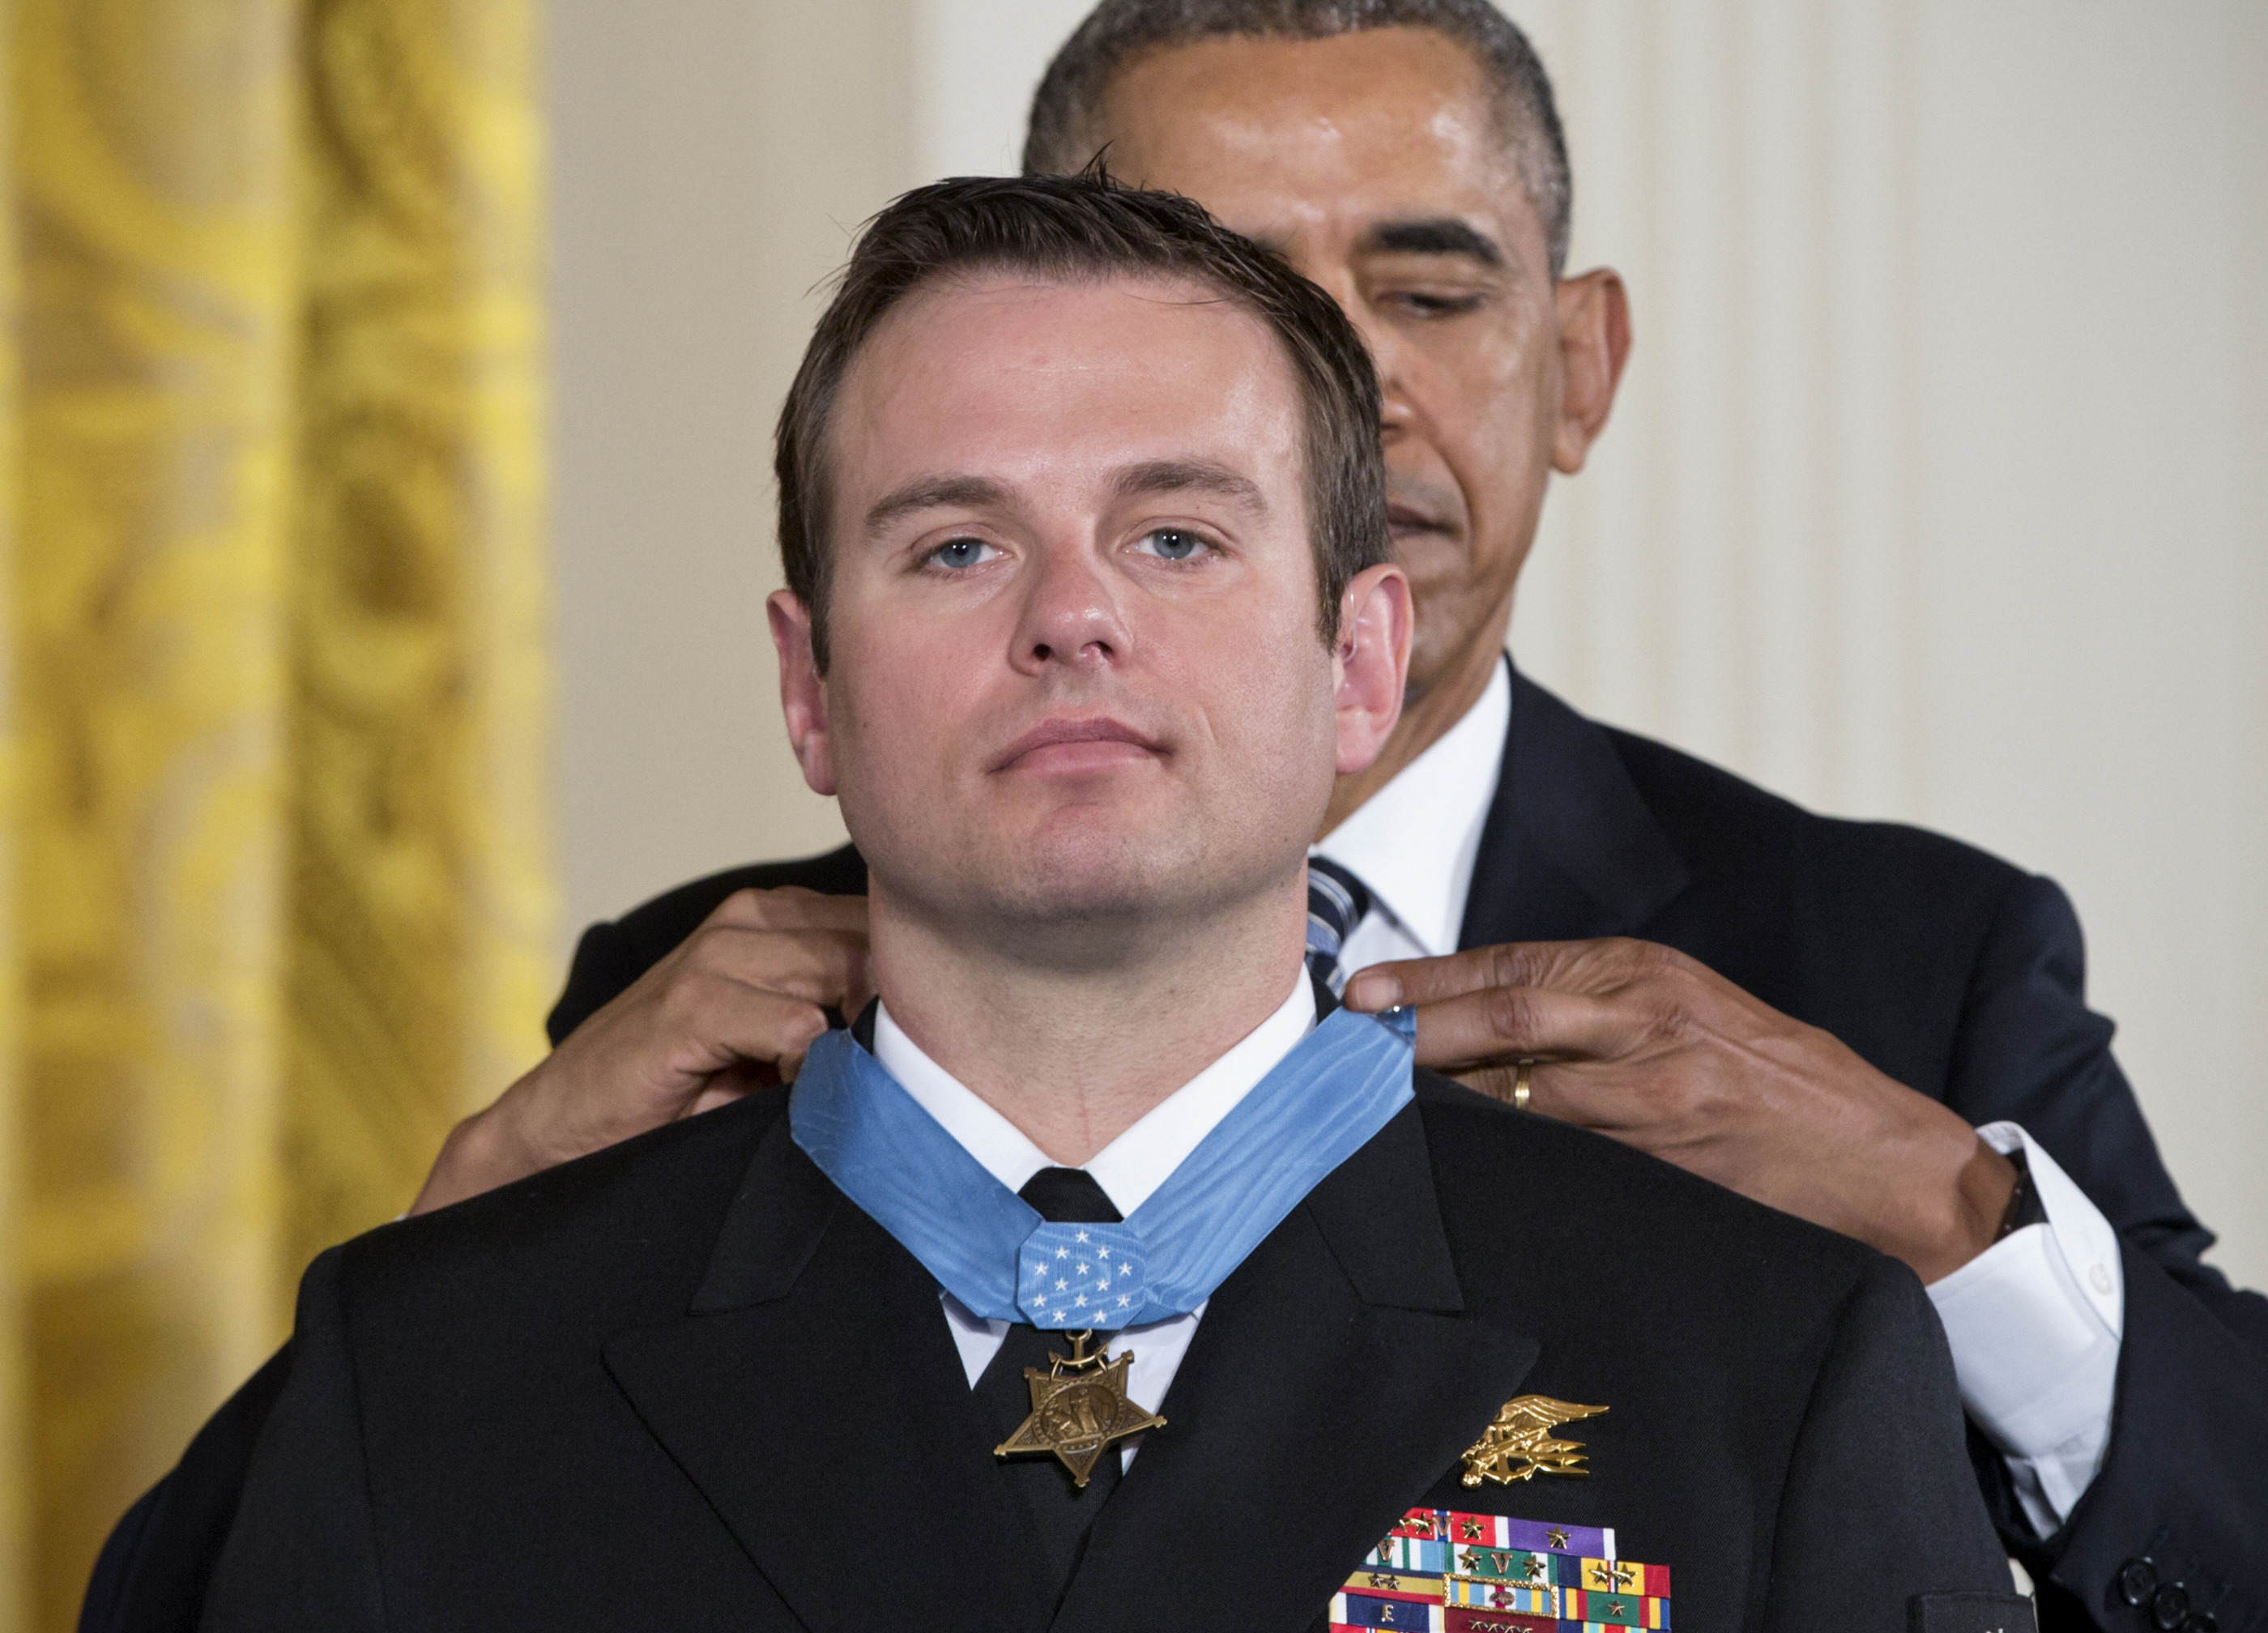 The Story Of How This Navy Seal Won A Medal Of Honour Is Incredible PA 25688346